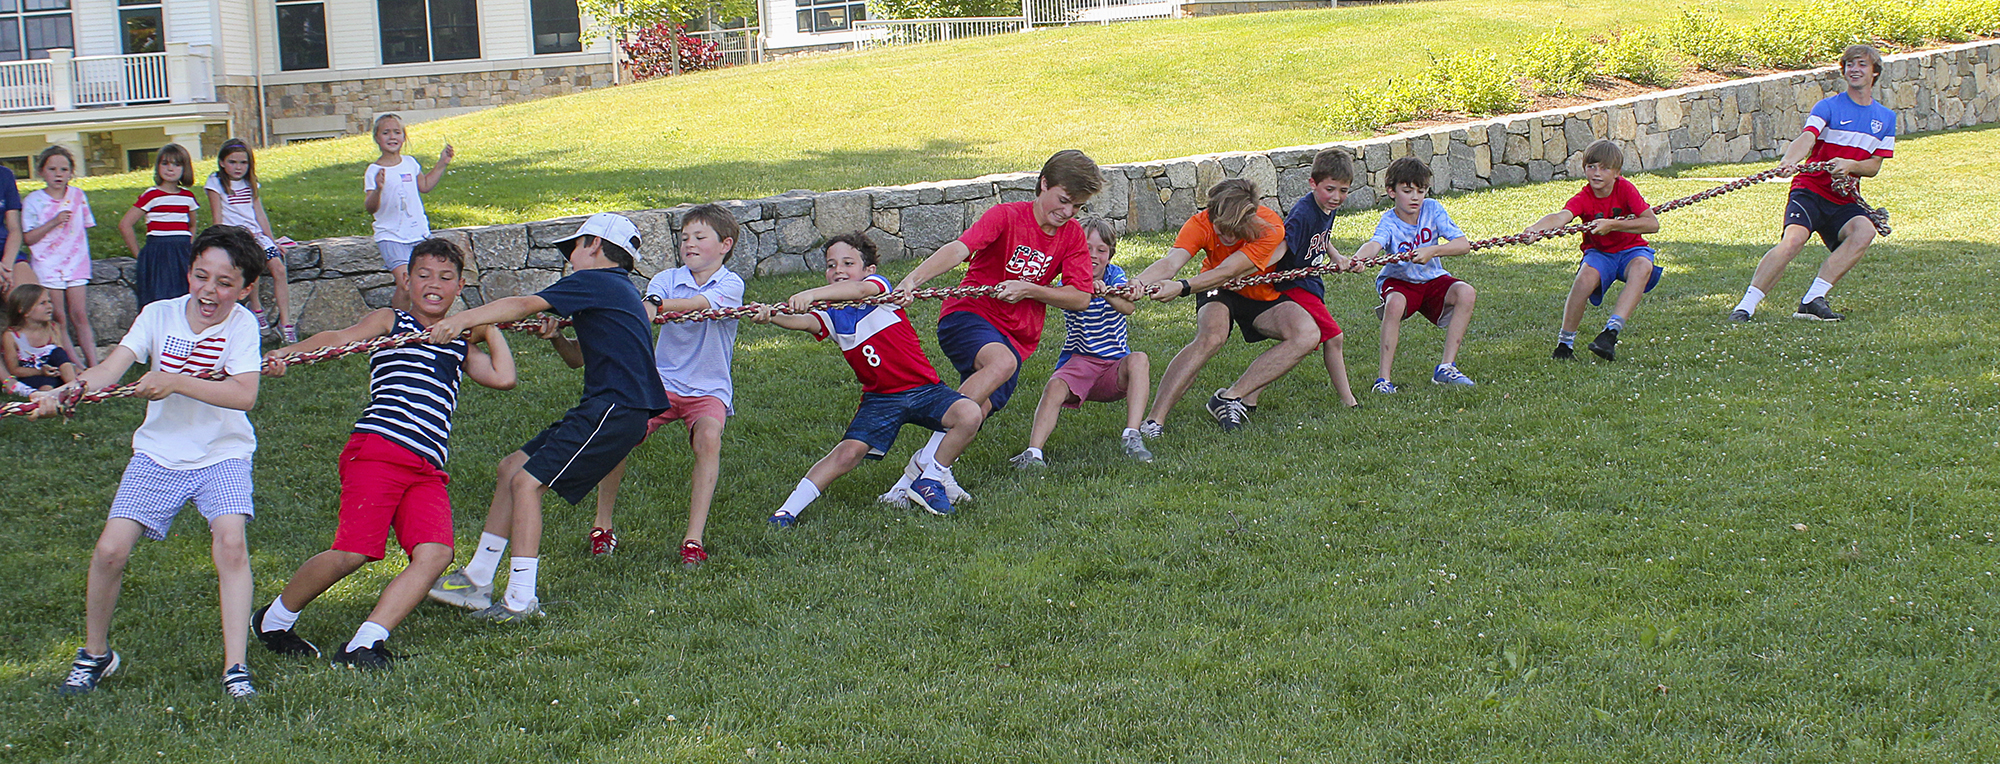 games at GCDS Summer Camp